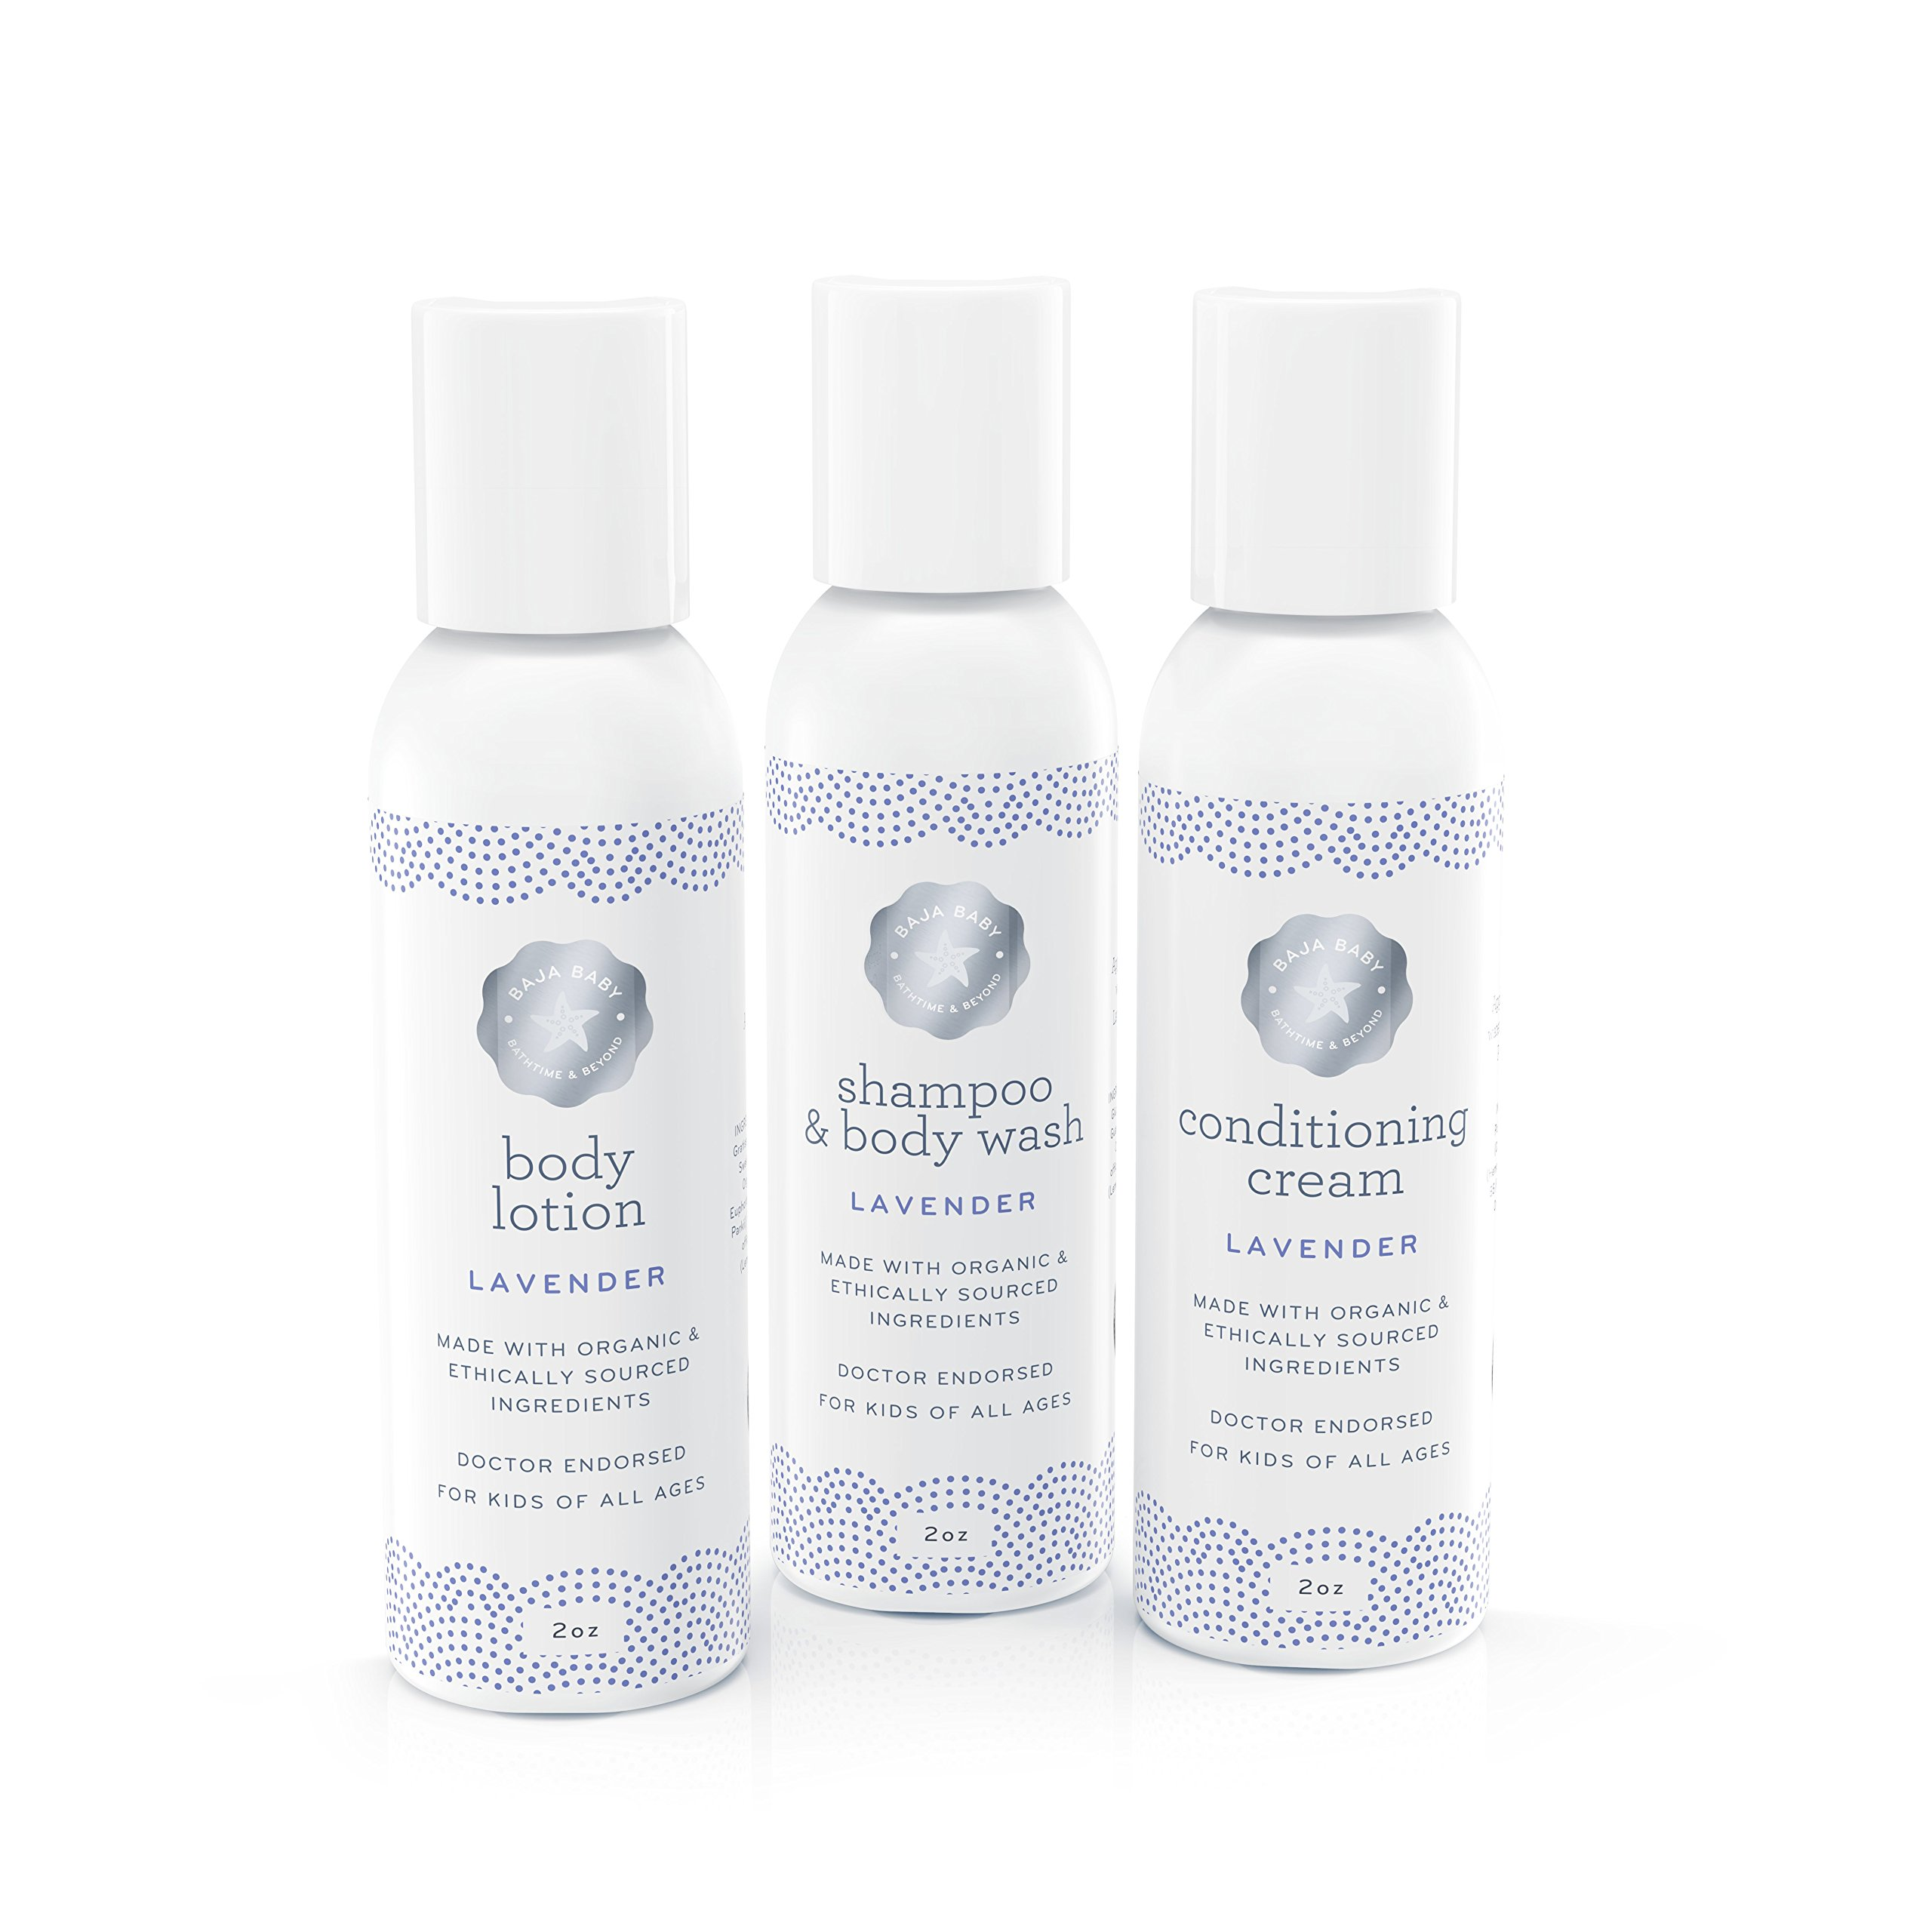 Baja Baby Lavender Travel Set - 2oz Shampoo, Conditioning Cream and Nourishing Body Lotion - EWG Verified™ - Free of Sulphates, Parabens and Phosphates - Dr Approved - 100% Money Back Guarantee!